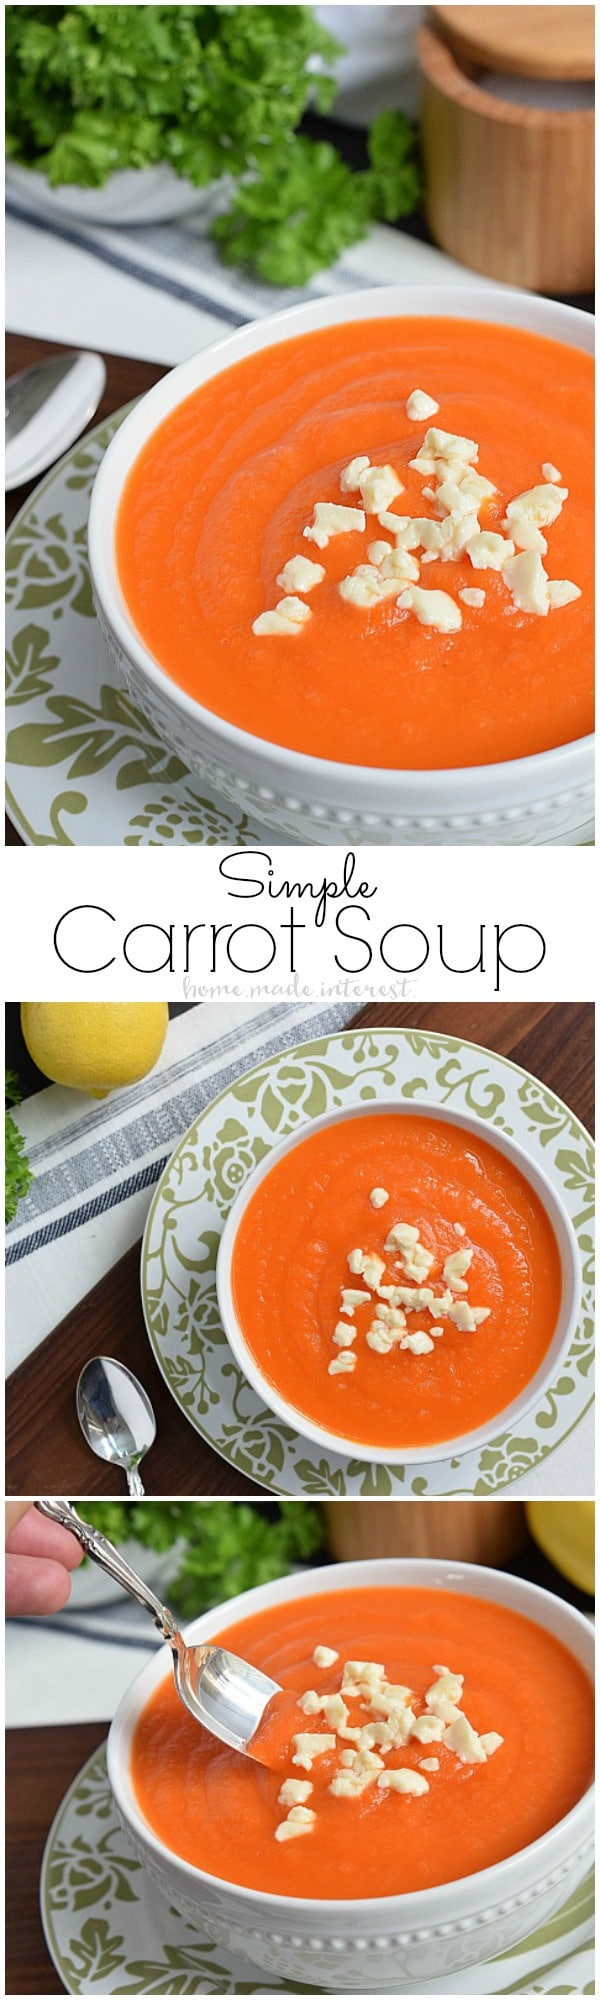 Carrot soup is an easy recipe that you can enjoy all year long. This easy carrot soup is light, and slightly sweet, with just the right amount of lemon to give it a little zing. This makes a great Easter recipe but I love it just about any time of the year!